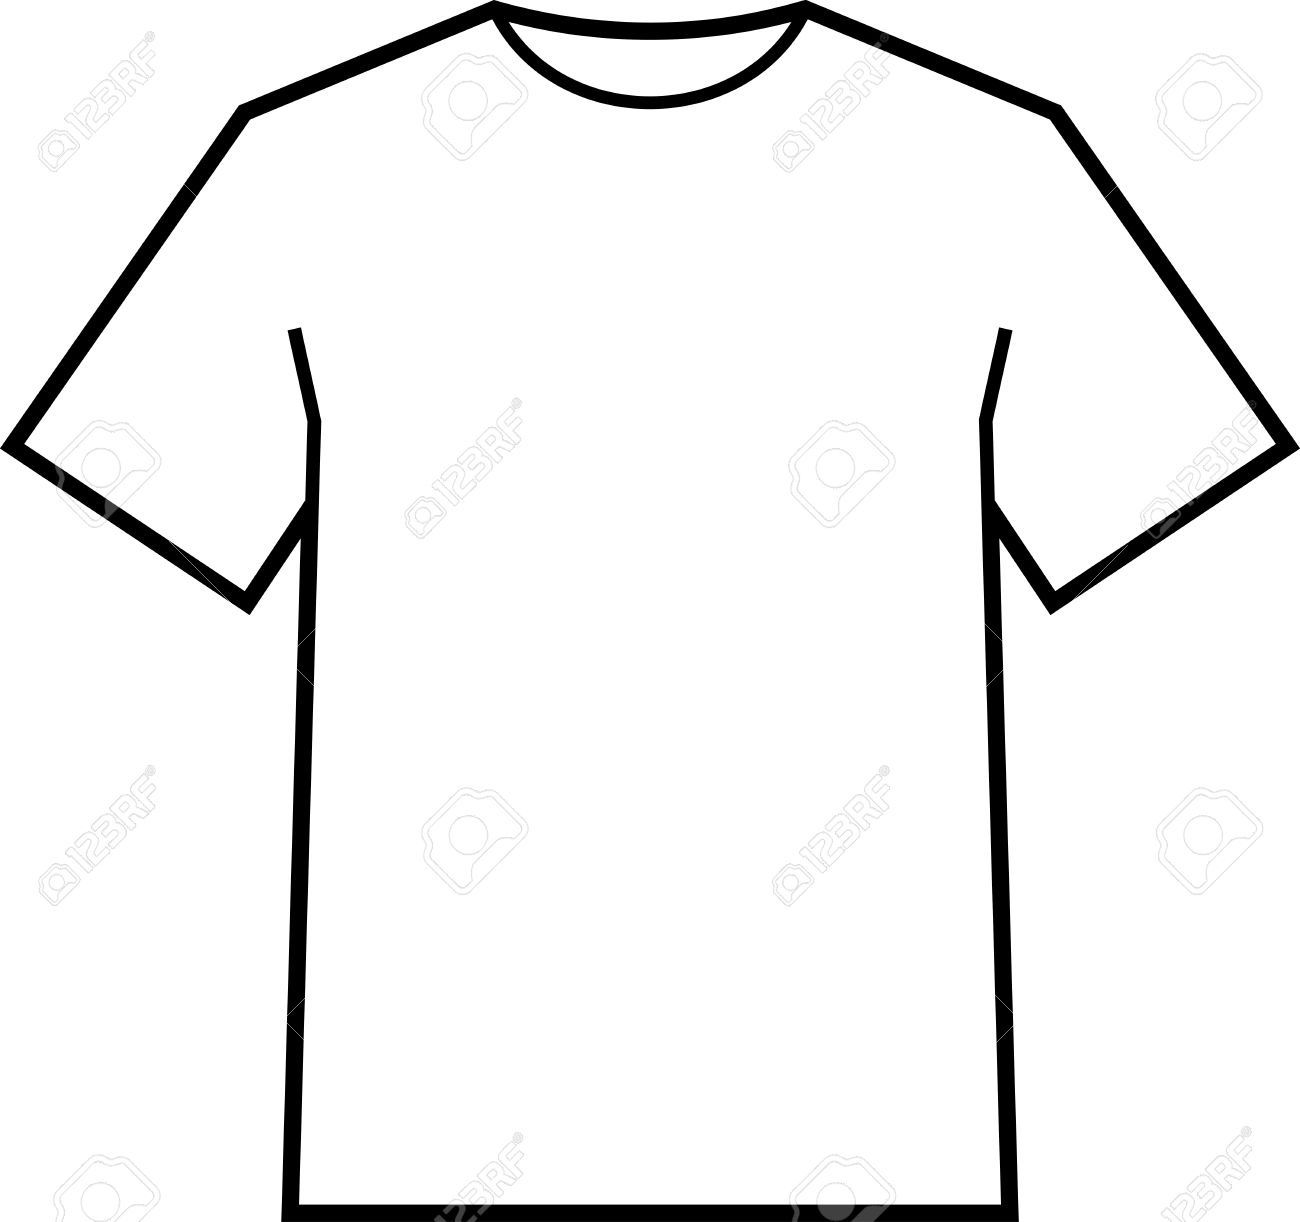 002 Fantastic Blank Tee Shirt Template Highest Clarity  T Design Pdf Free T-shirt Front And Back DownloadFull